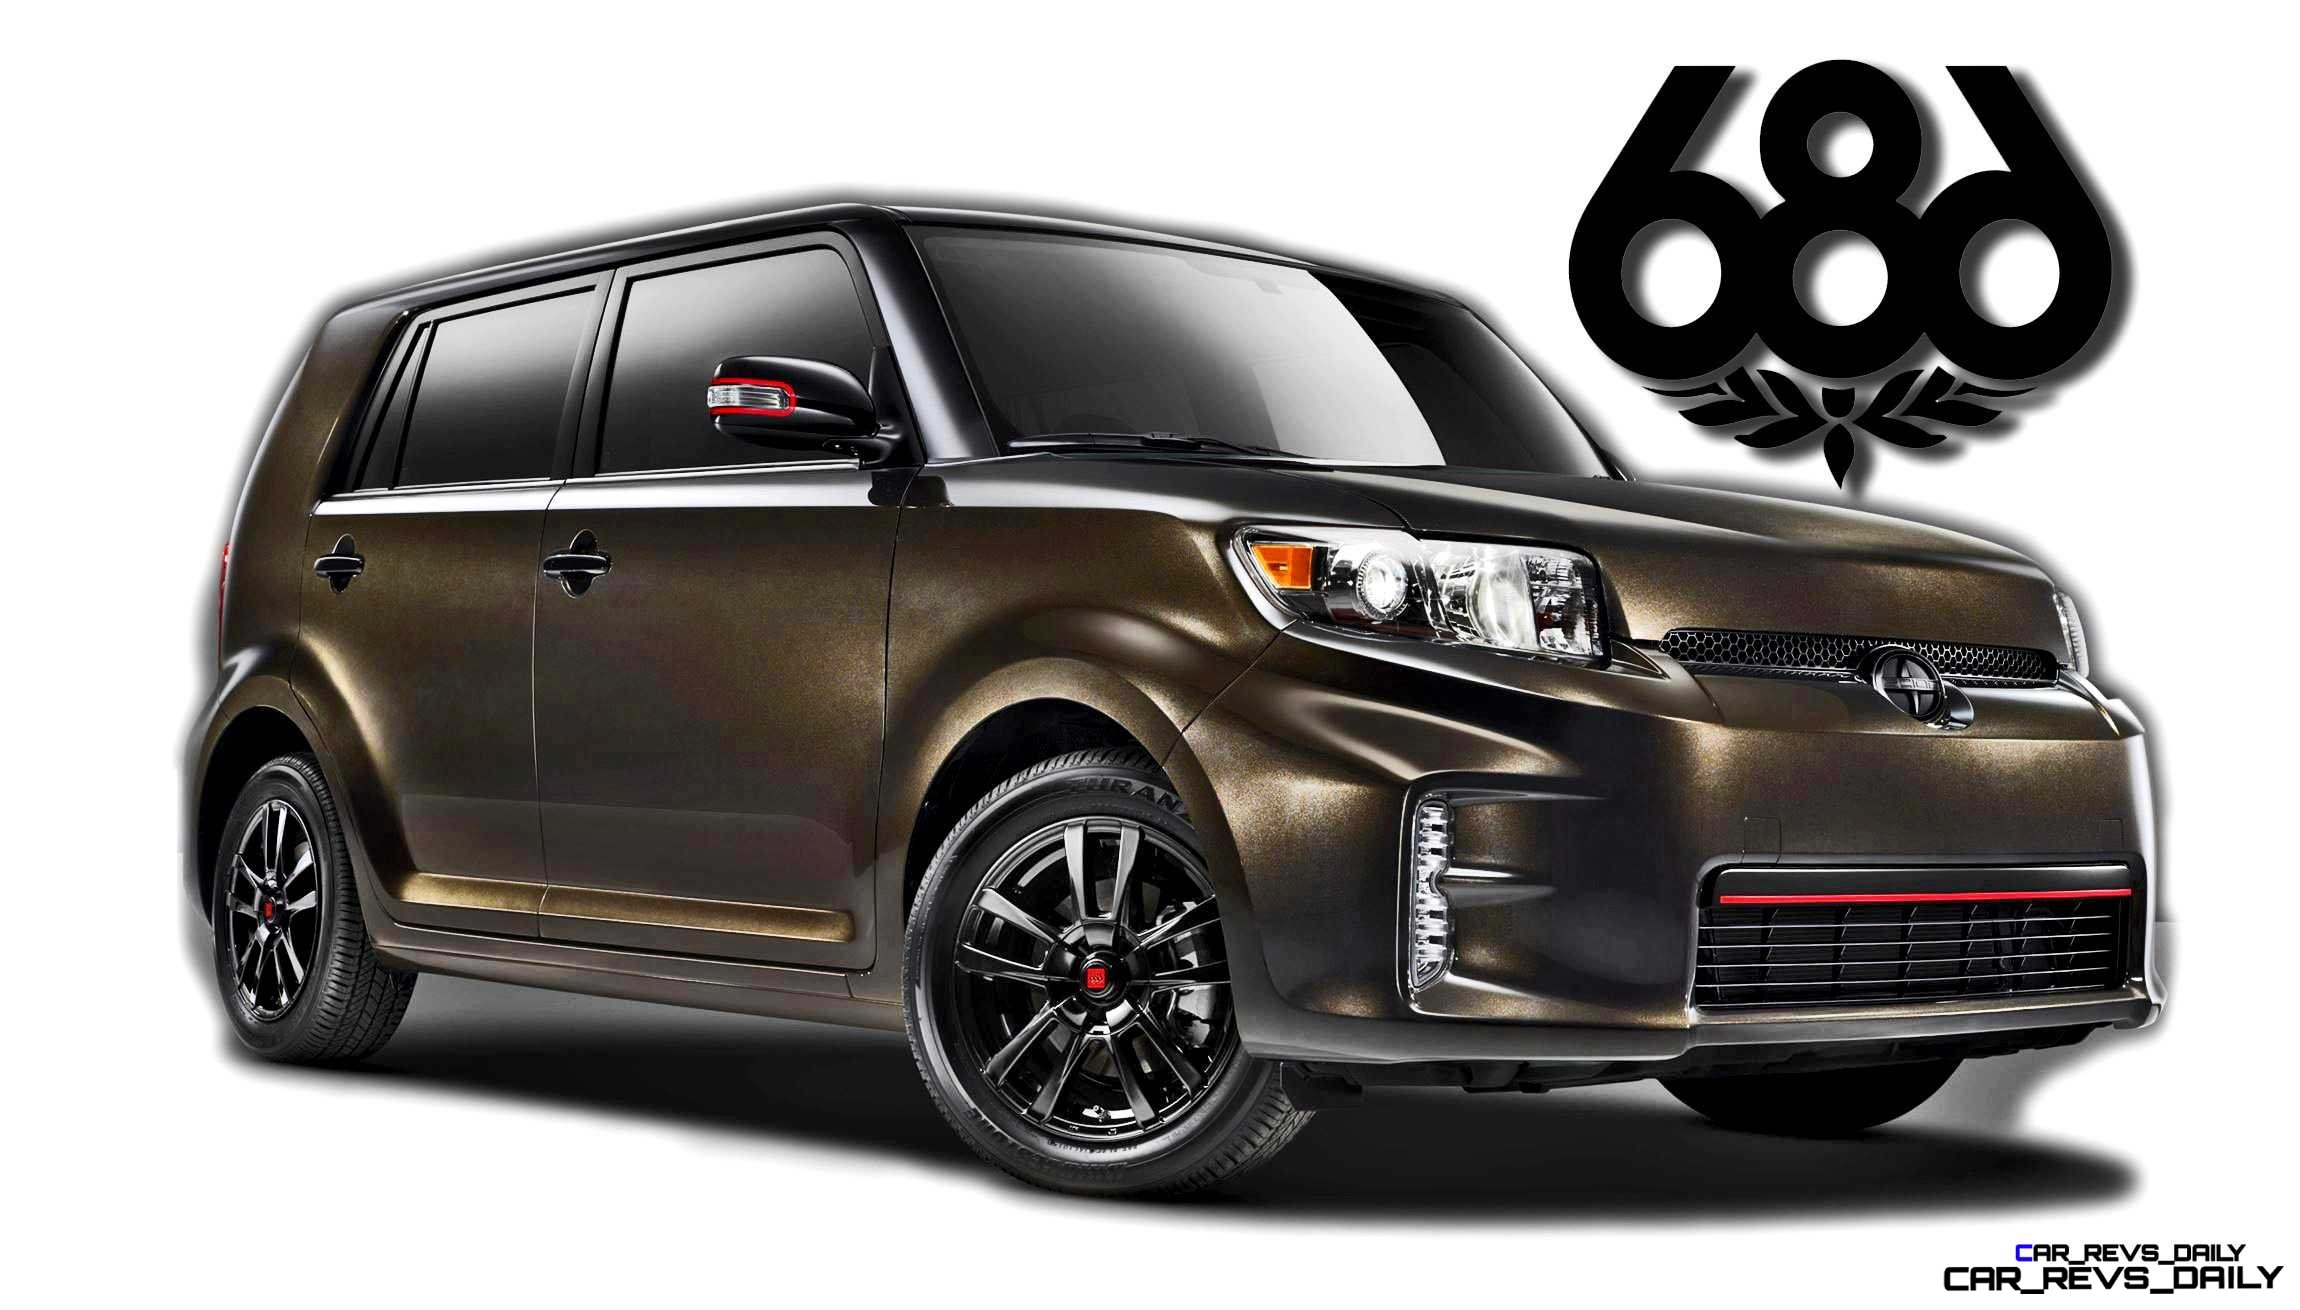 2015-Scion-xB-686-Parklan-Edition-1